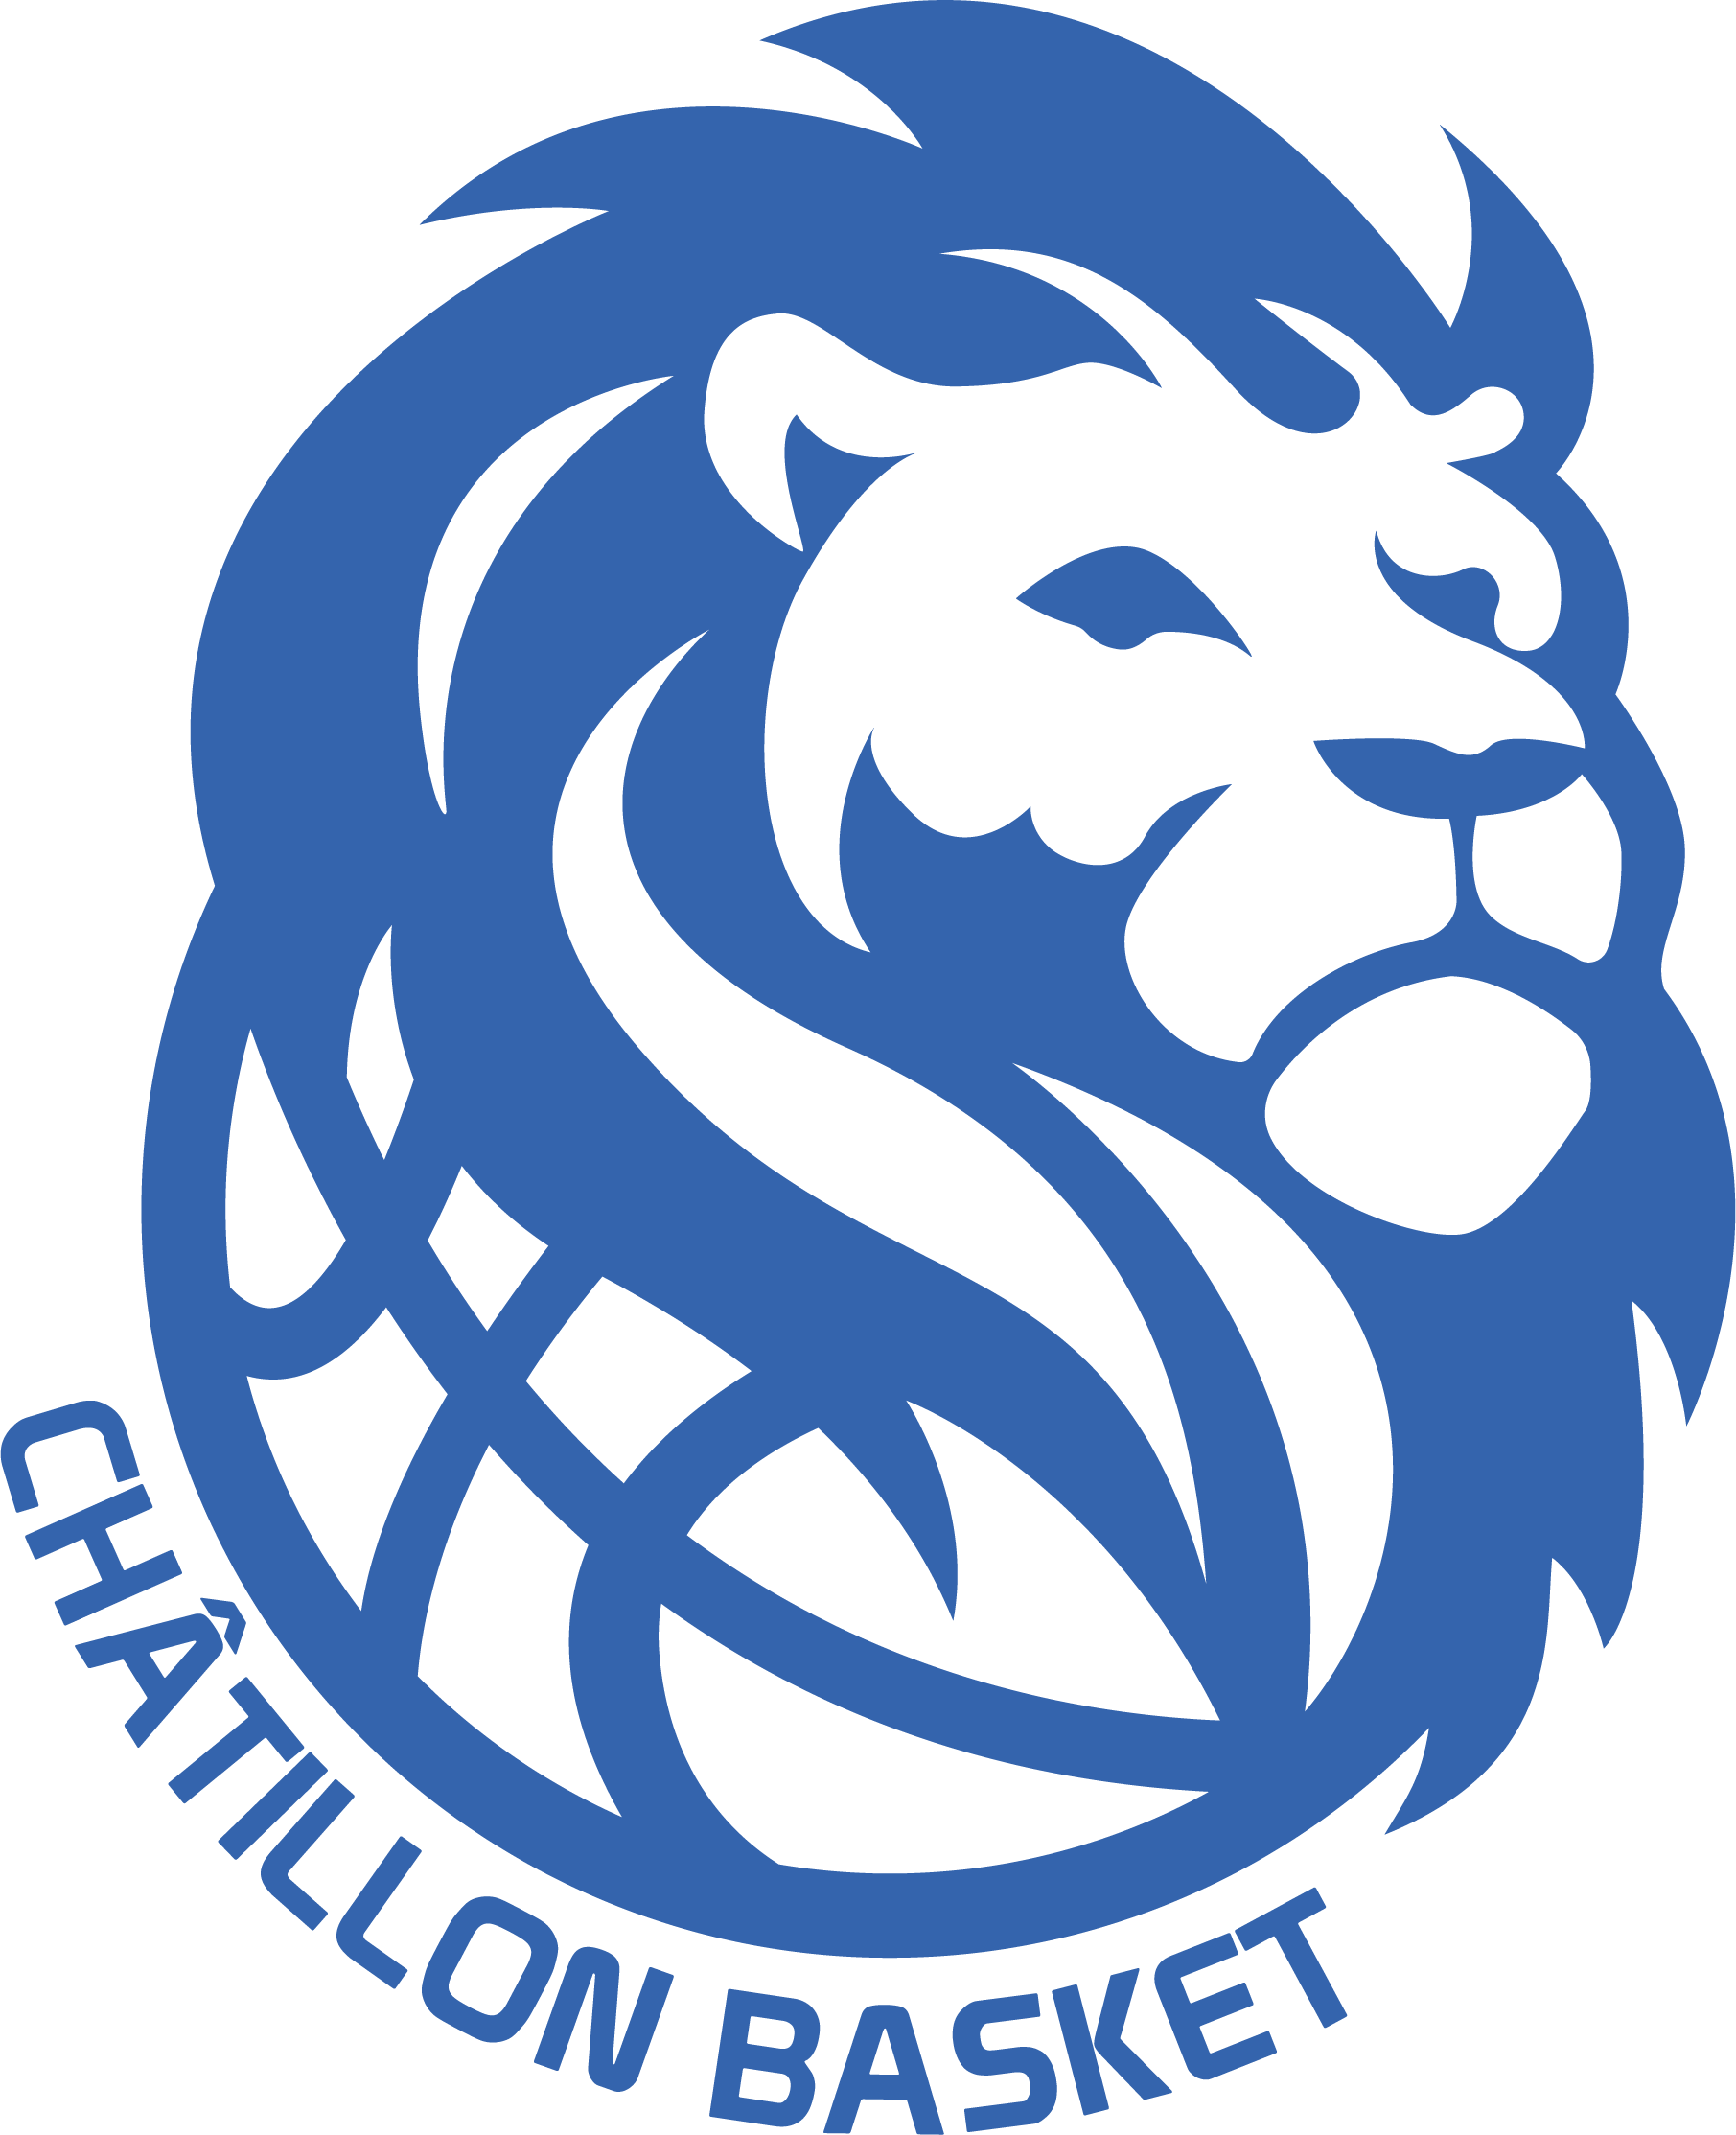 logo-chatillon-basket-transparent